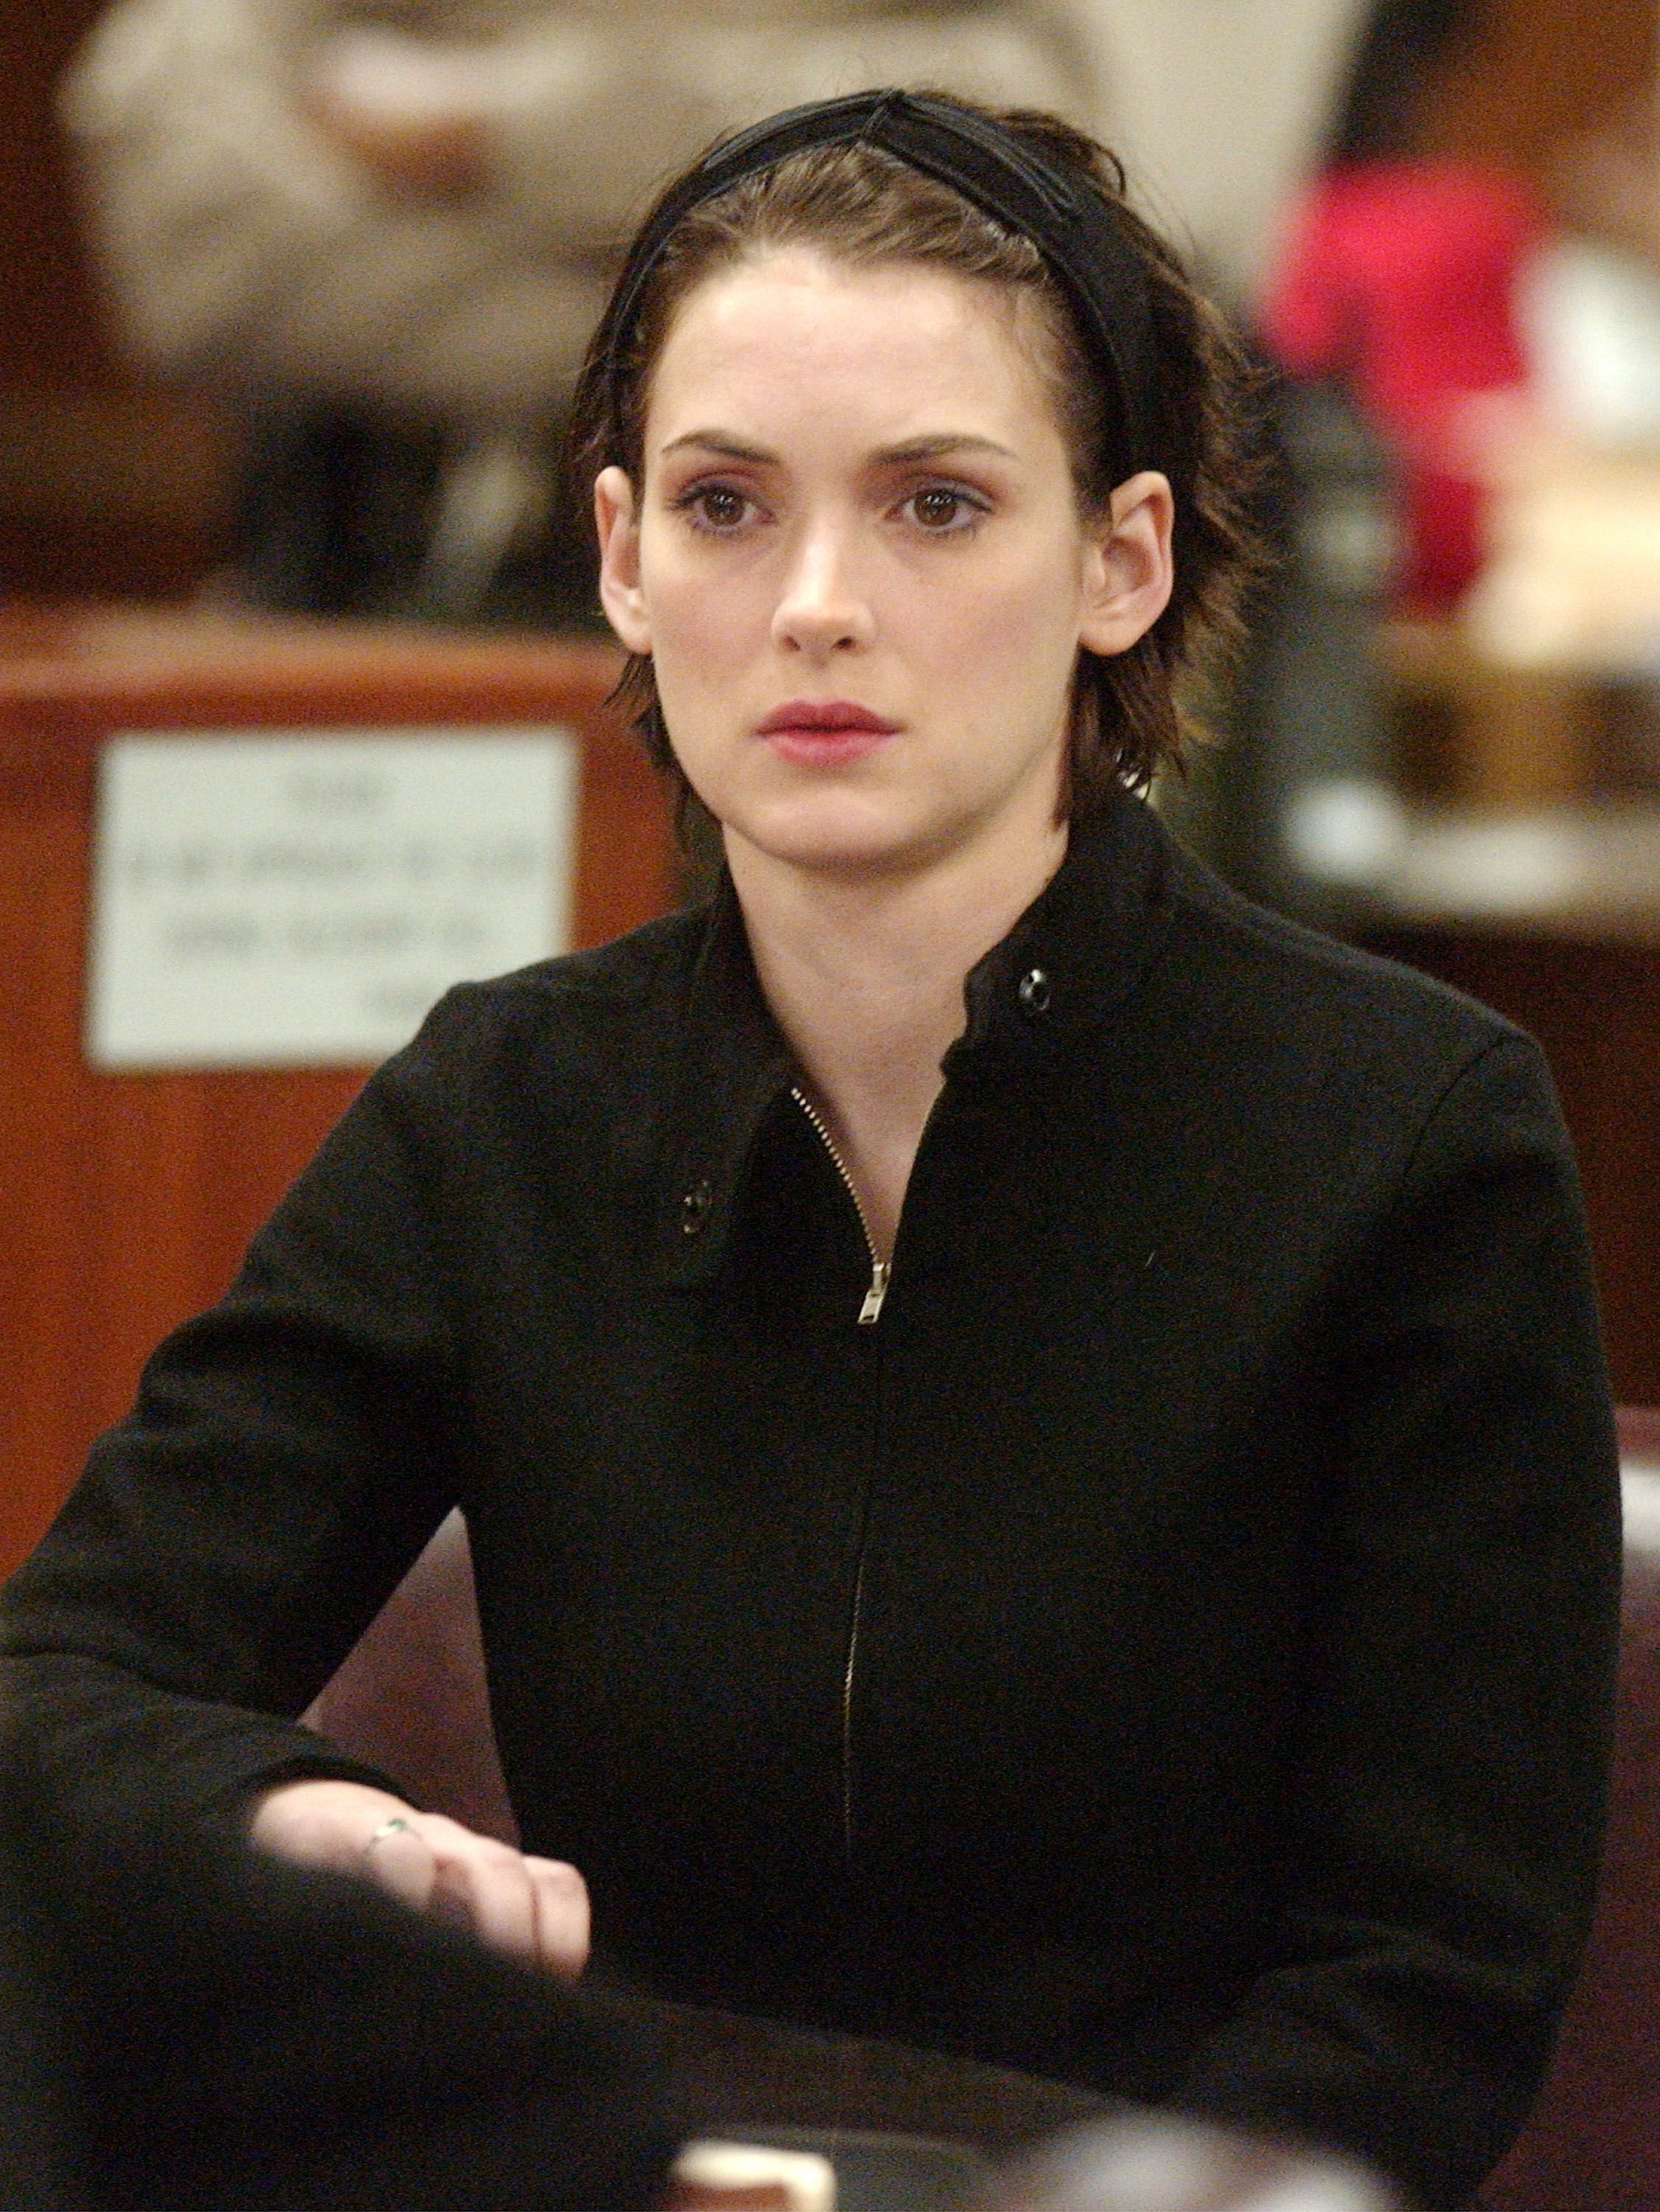 BEVERLY HILLS, CA - DECEMBER 6:  Actress Winona Ryder reacts in court during her sentencing hearing for shoplifting at the Beverly Hills Municipal Court on December 6, 2002 in Beverly Hills, California. The 31 year-old actress was sentenced to three years probation, 480 hours of community service for shoplifting from Saks Fifth Avenue, ordered to pay more than $11,300 in fines and ordered to take drug and psychological counseling. (Photo by Steve Grayson-Pool/Getty Images)